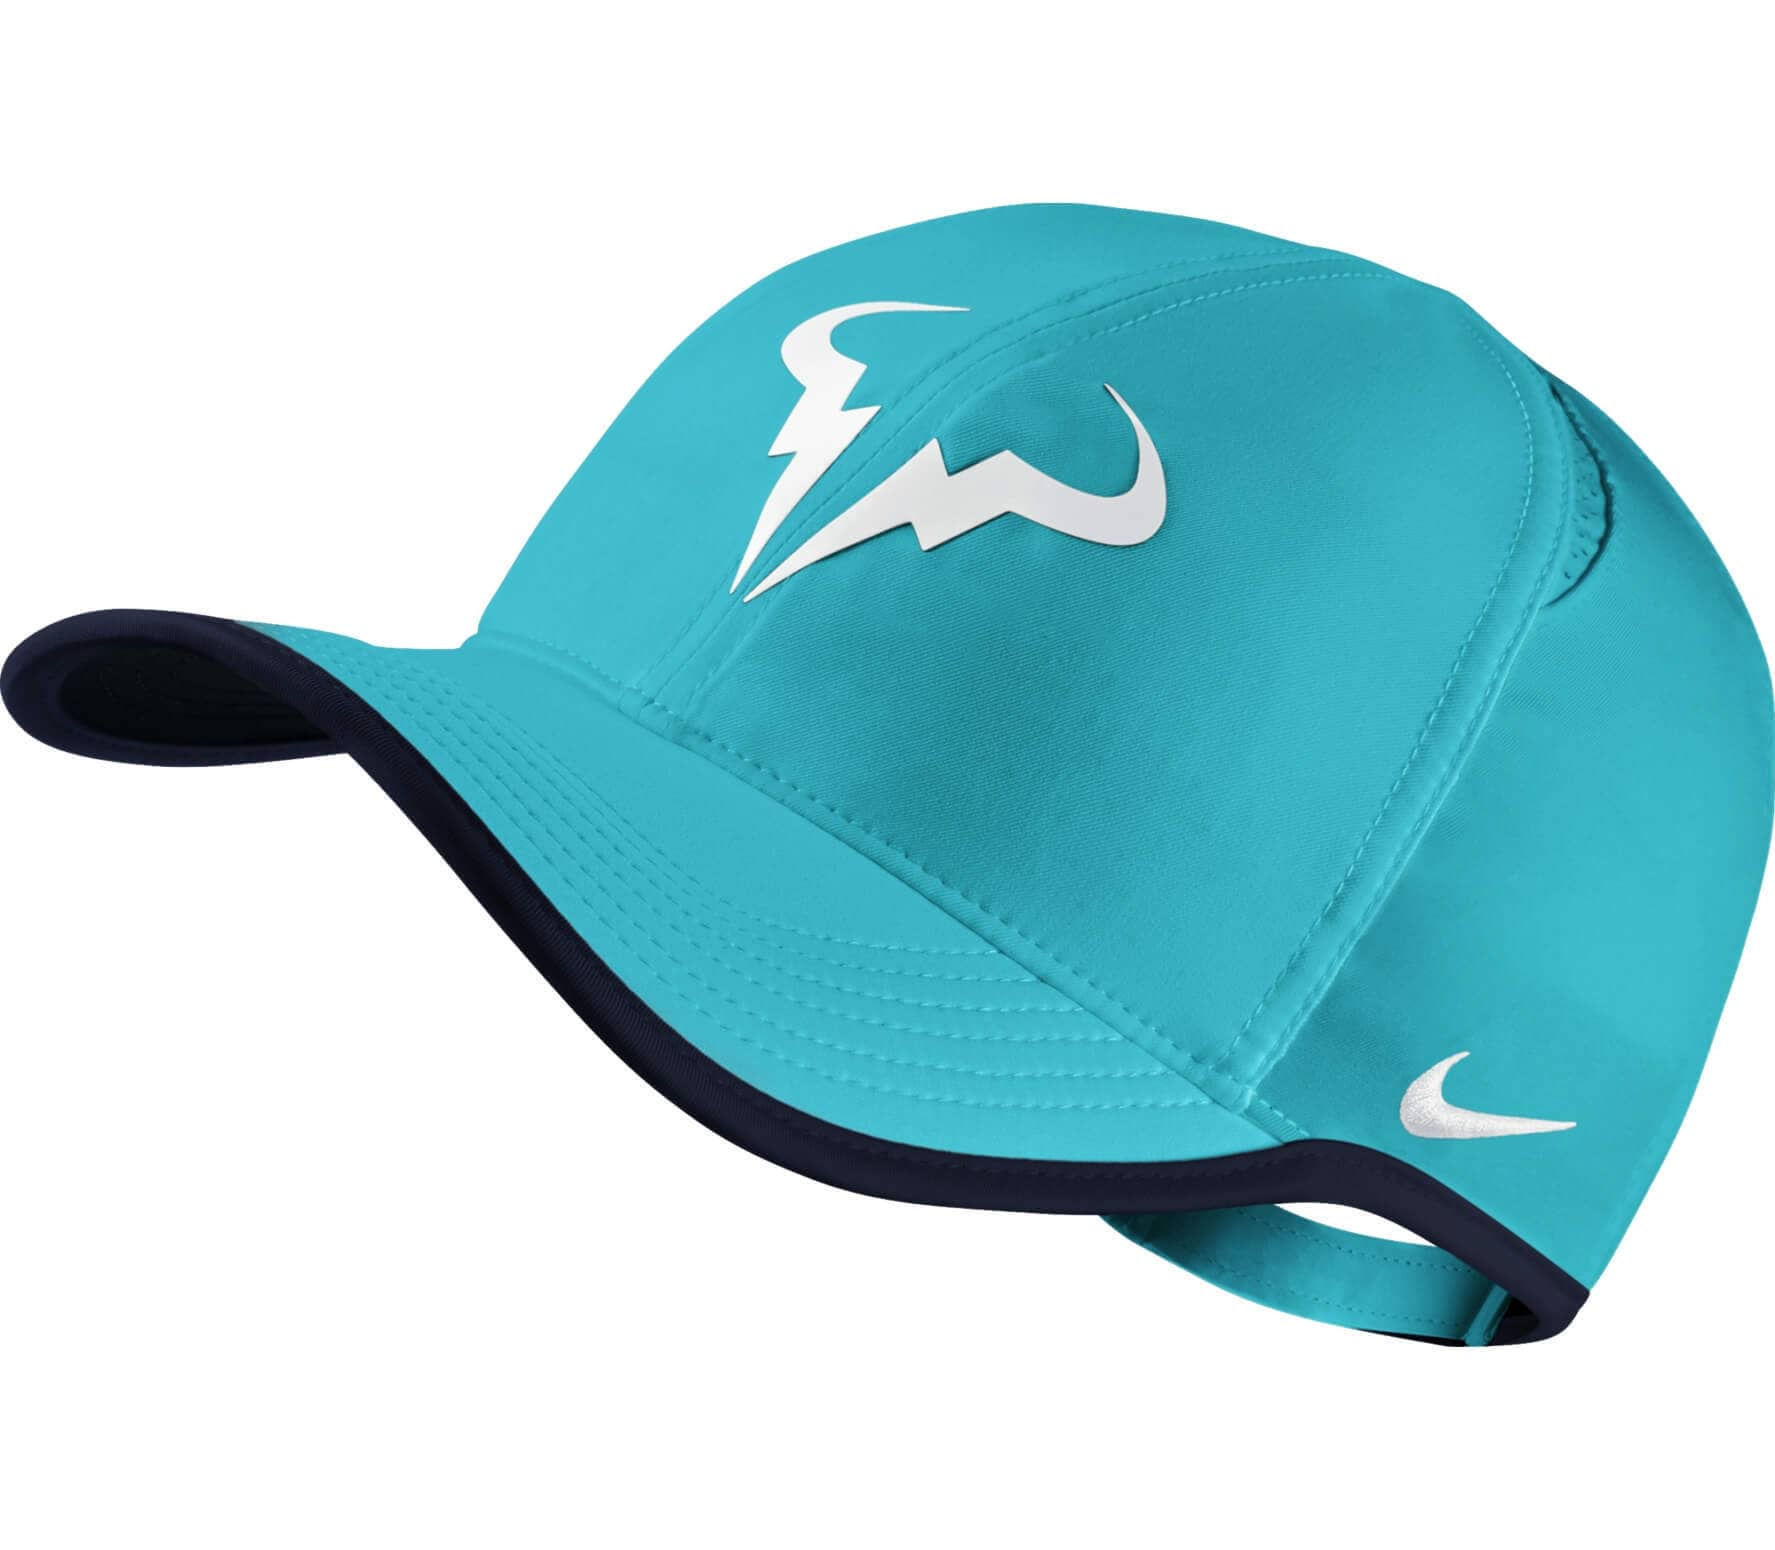 542a57de59fcb Nike - Rafa Nadal Featherlight tennis cap (light blue white) - buy ...